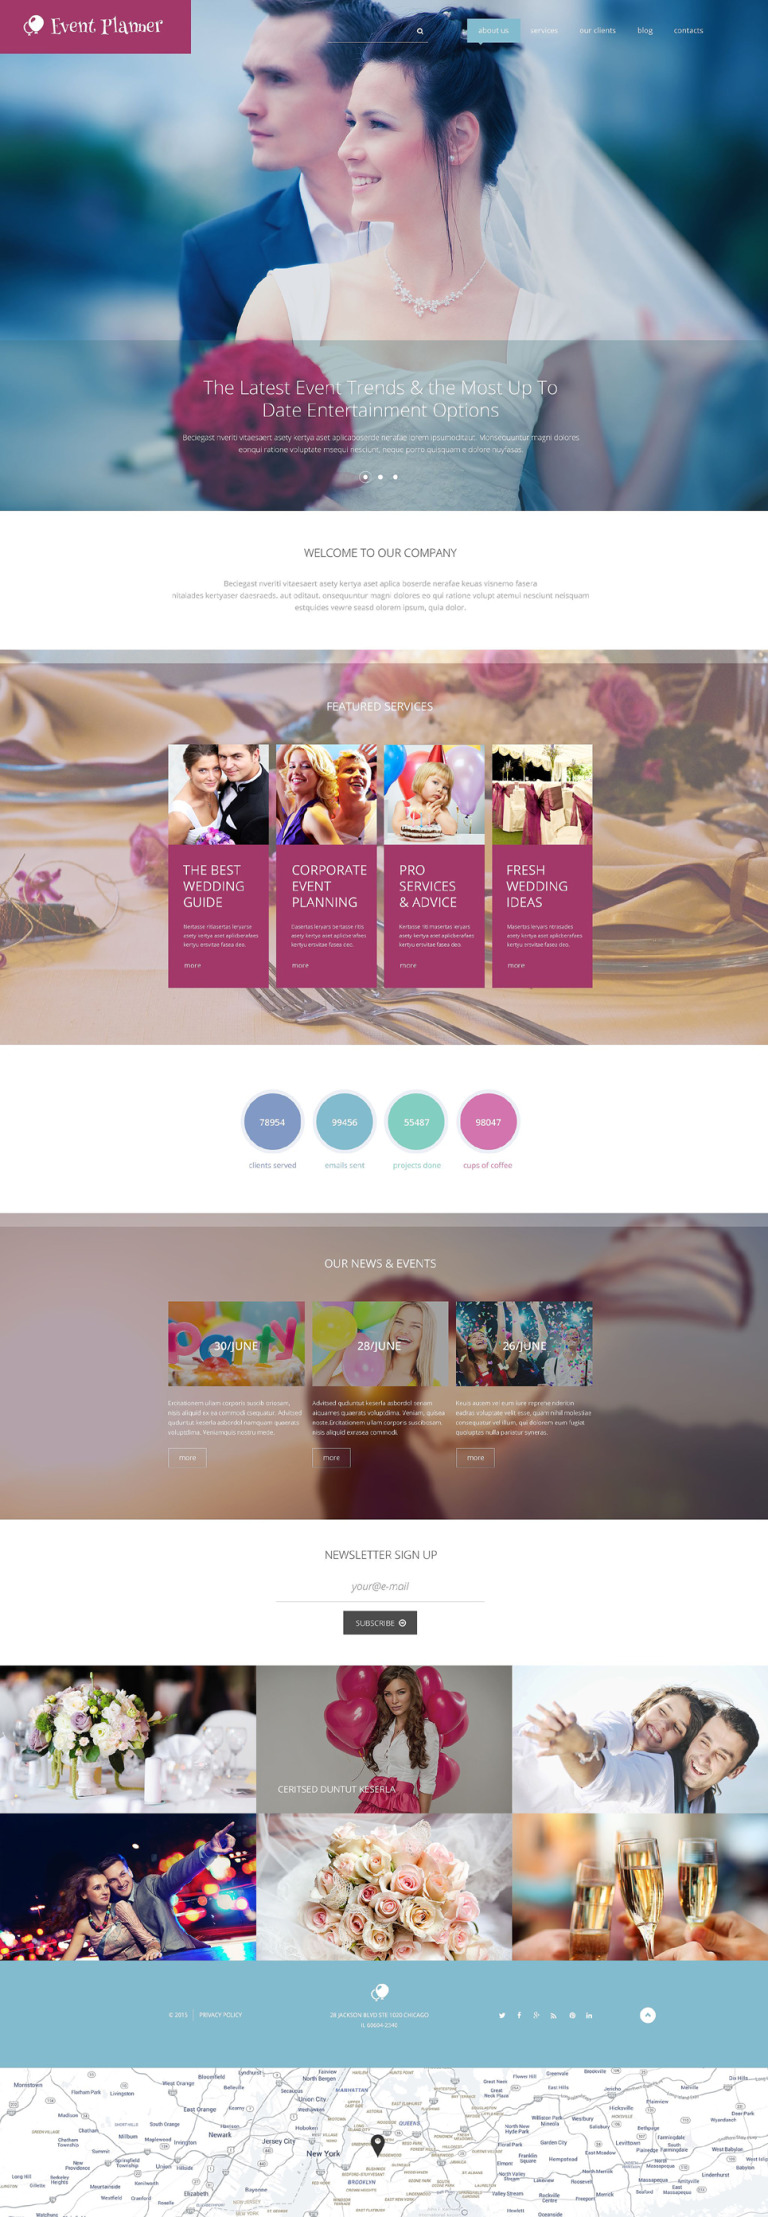 Event Planner Drupal Template New Screenshots BIG